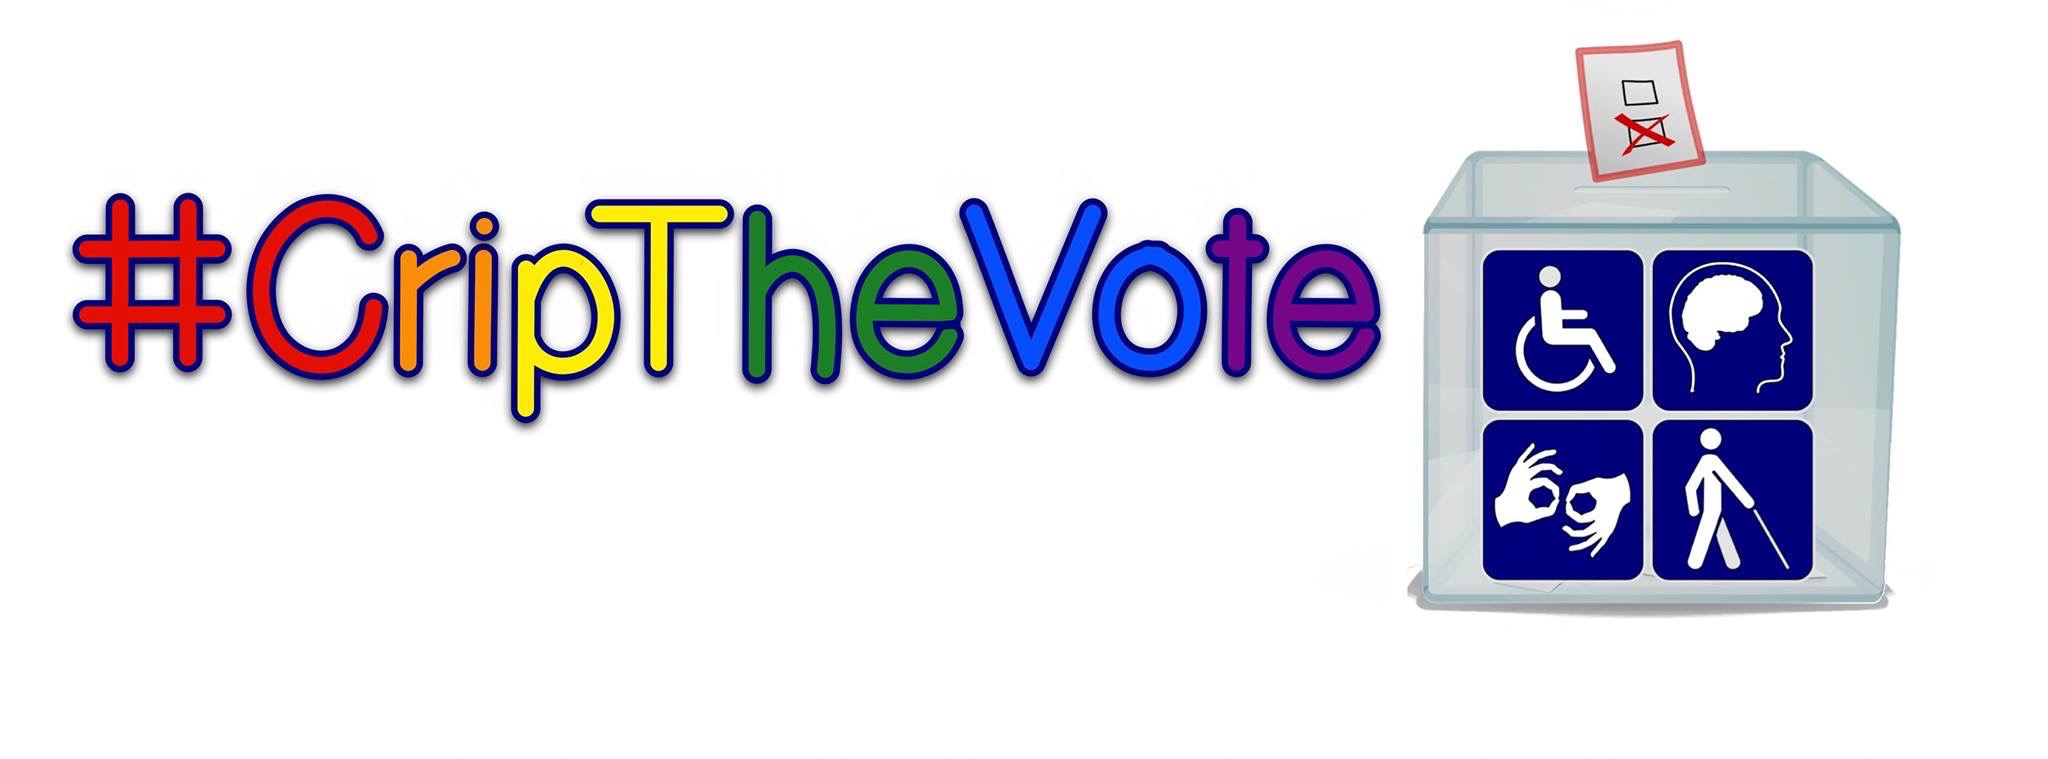 #CripTheVote in rainbow color letters, to the right picture of a ballot box with four disability symbols on the front